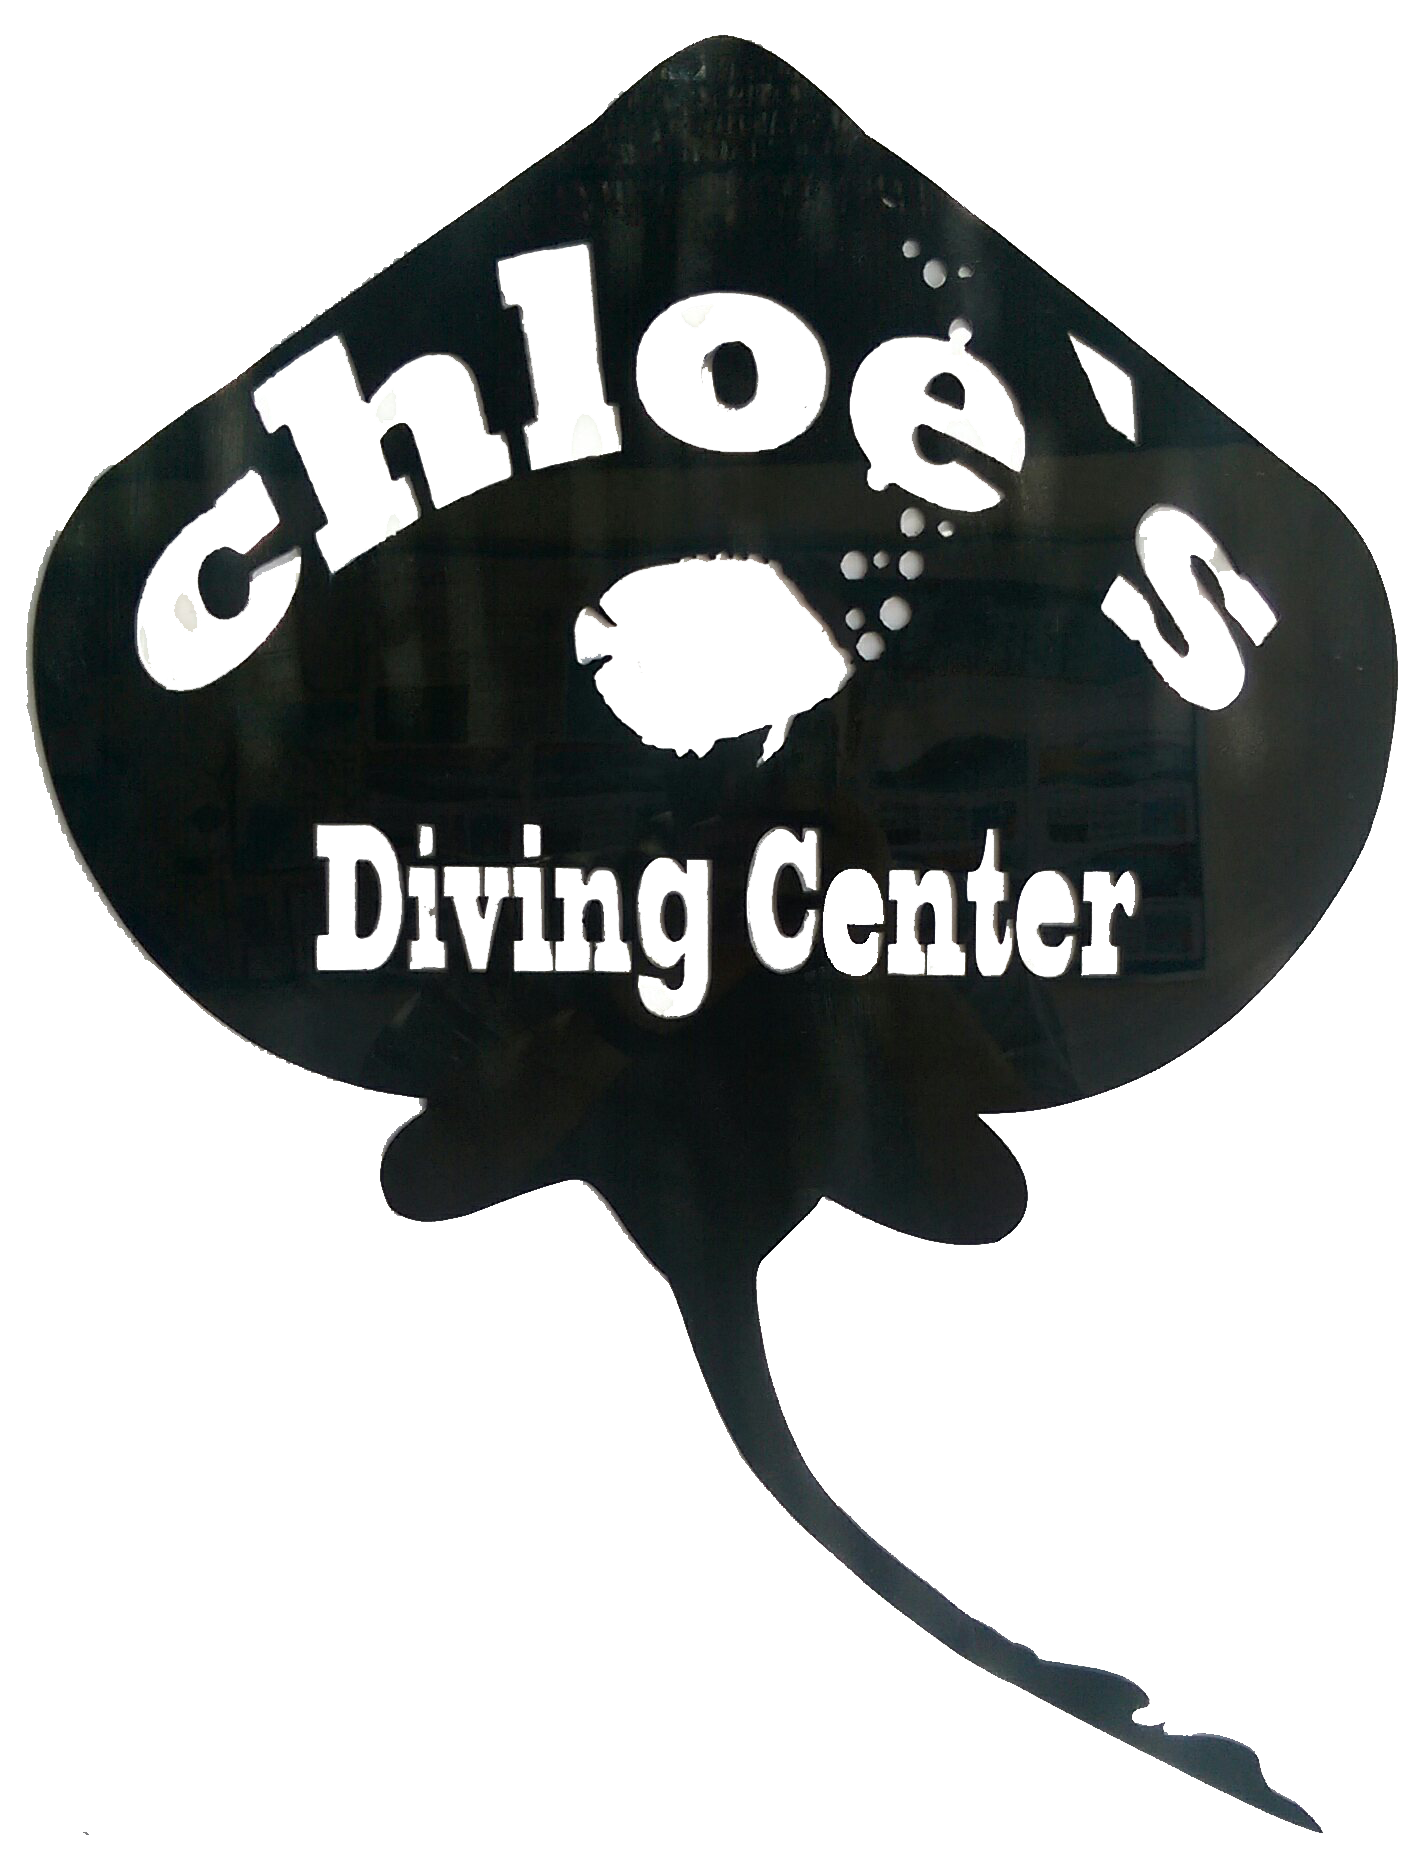 Chloe's Diving